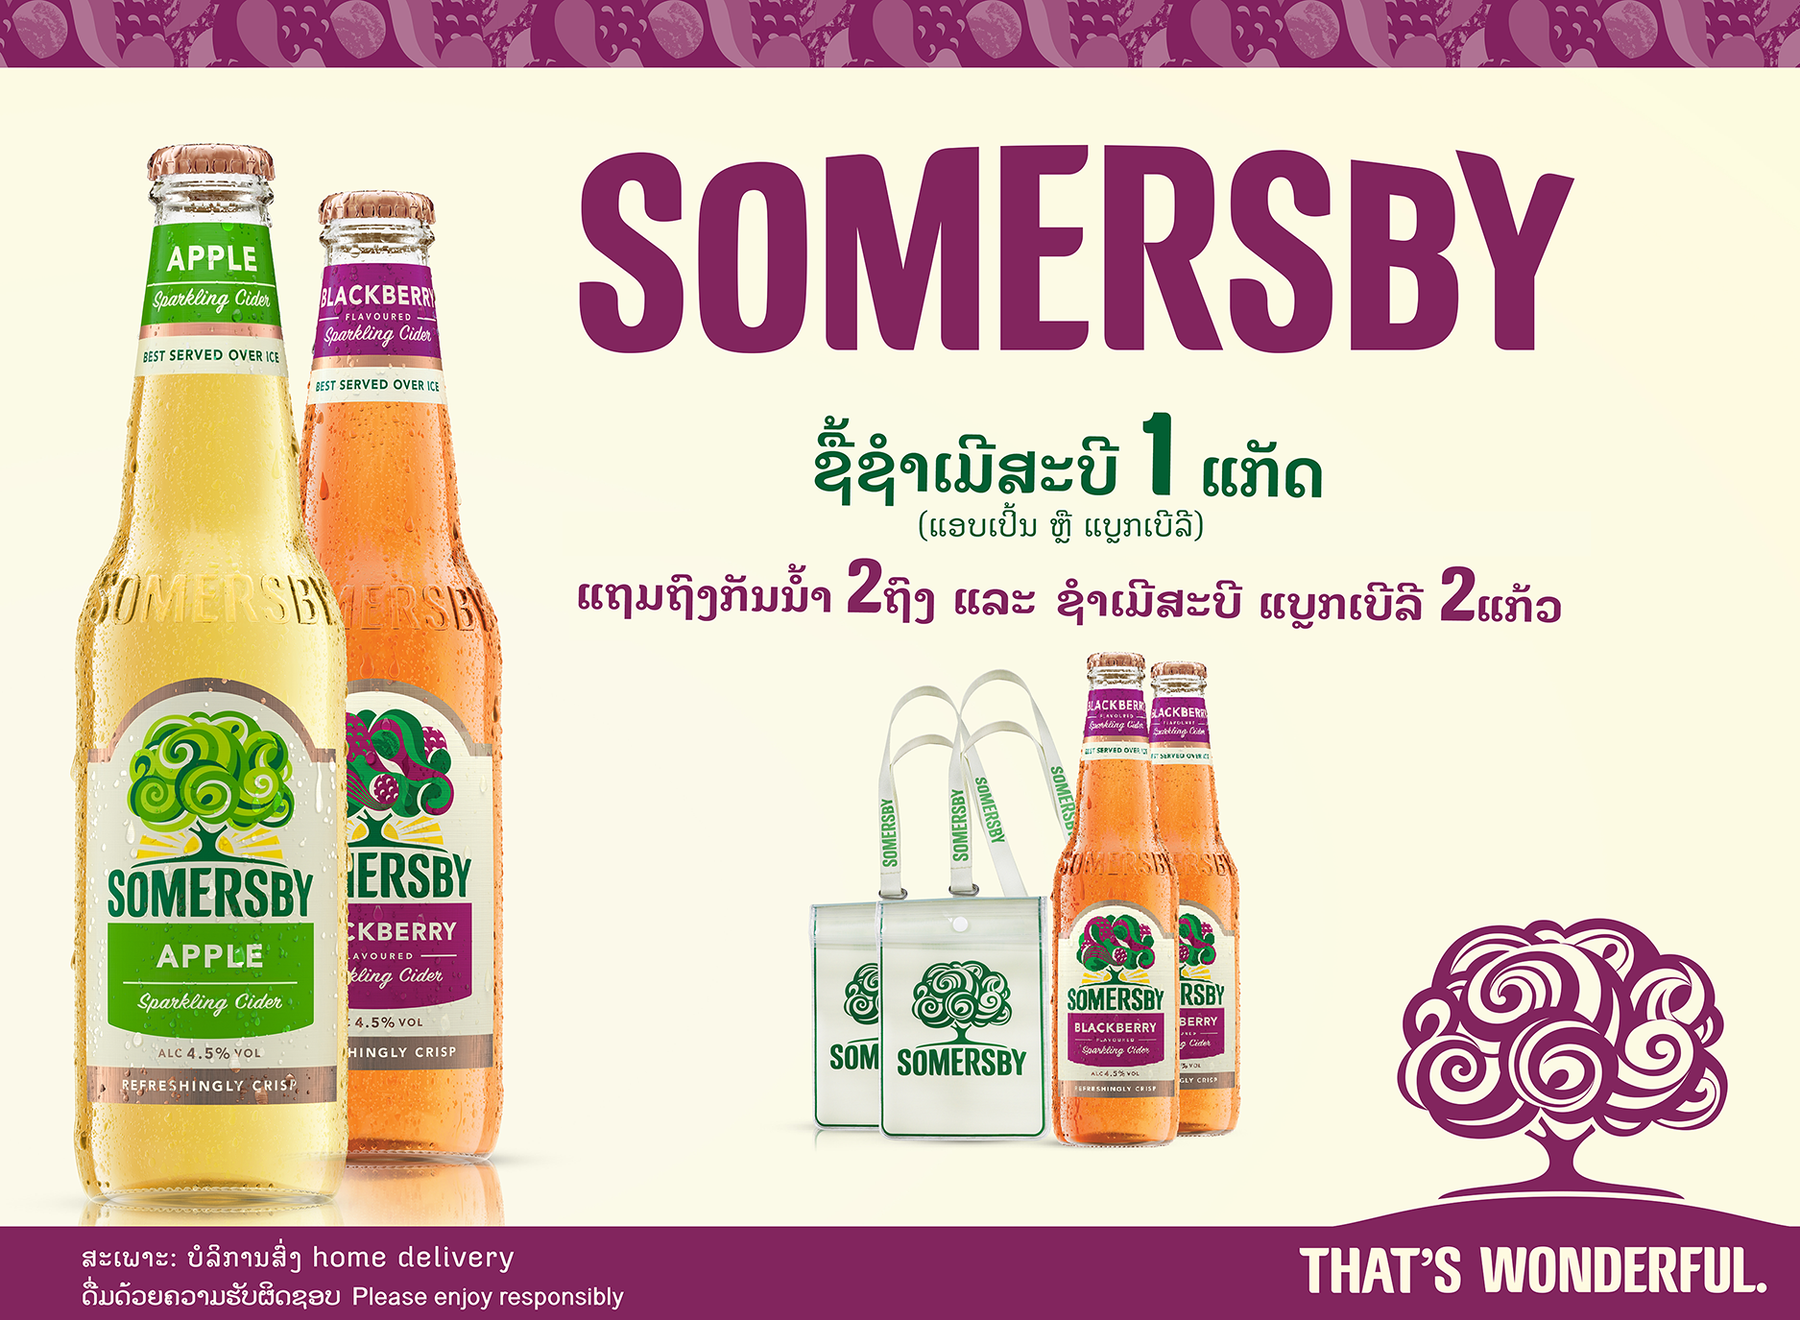 Somersby 330ml 1xCarton of 24 bottles + GET 2x Waterbags & 2 bottles for FREE